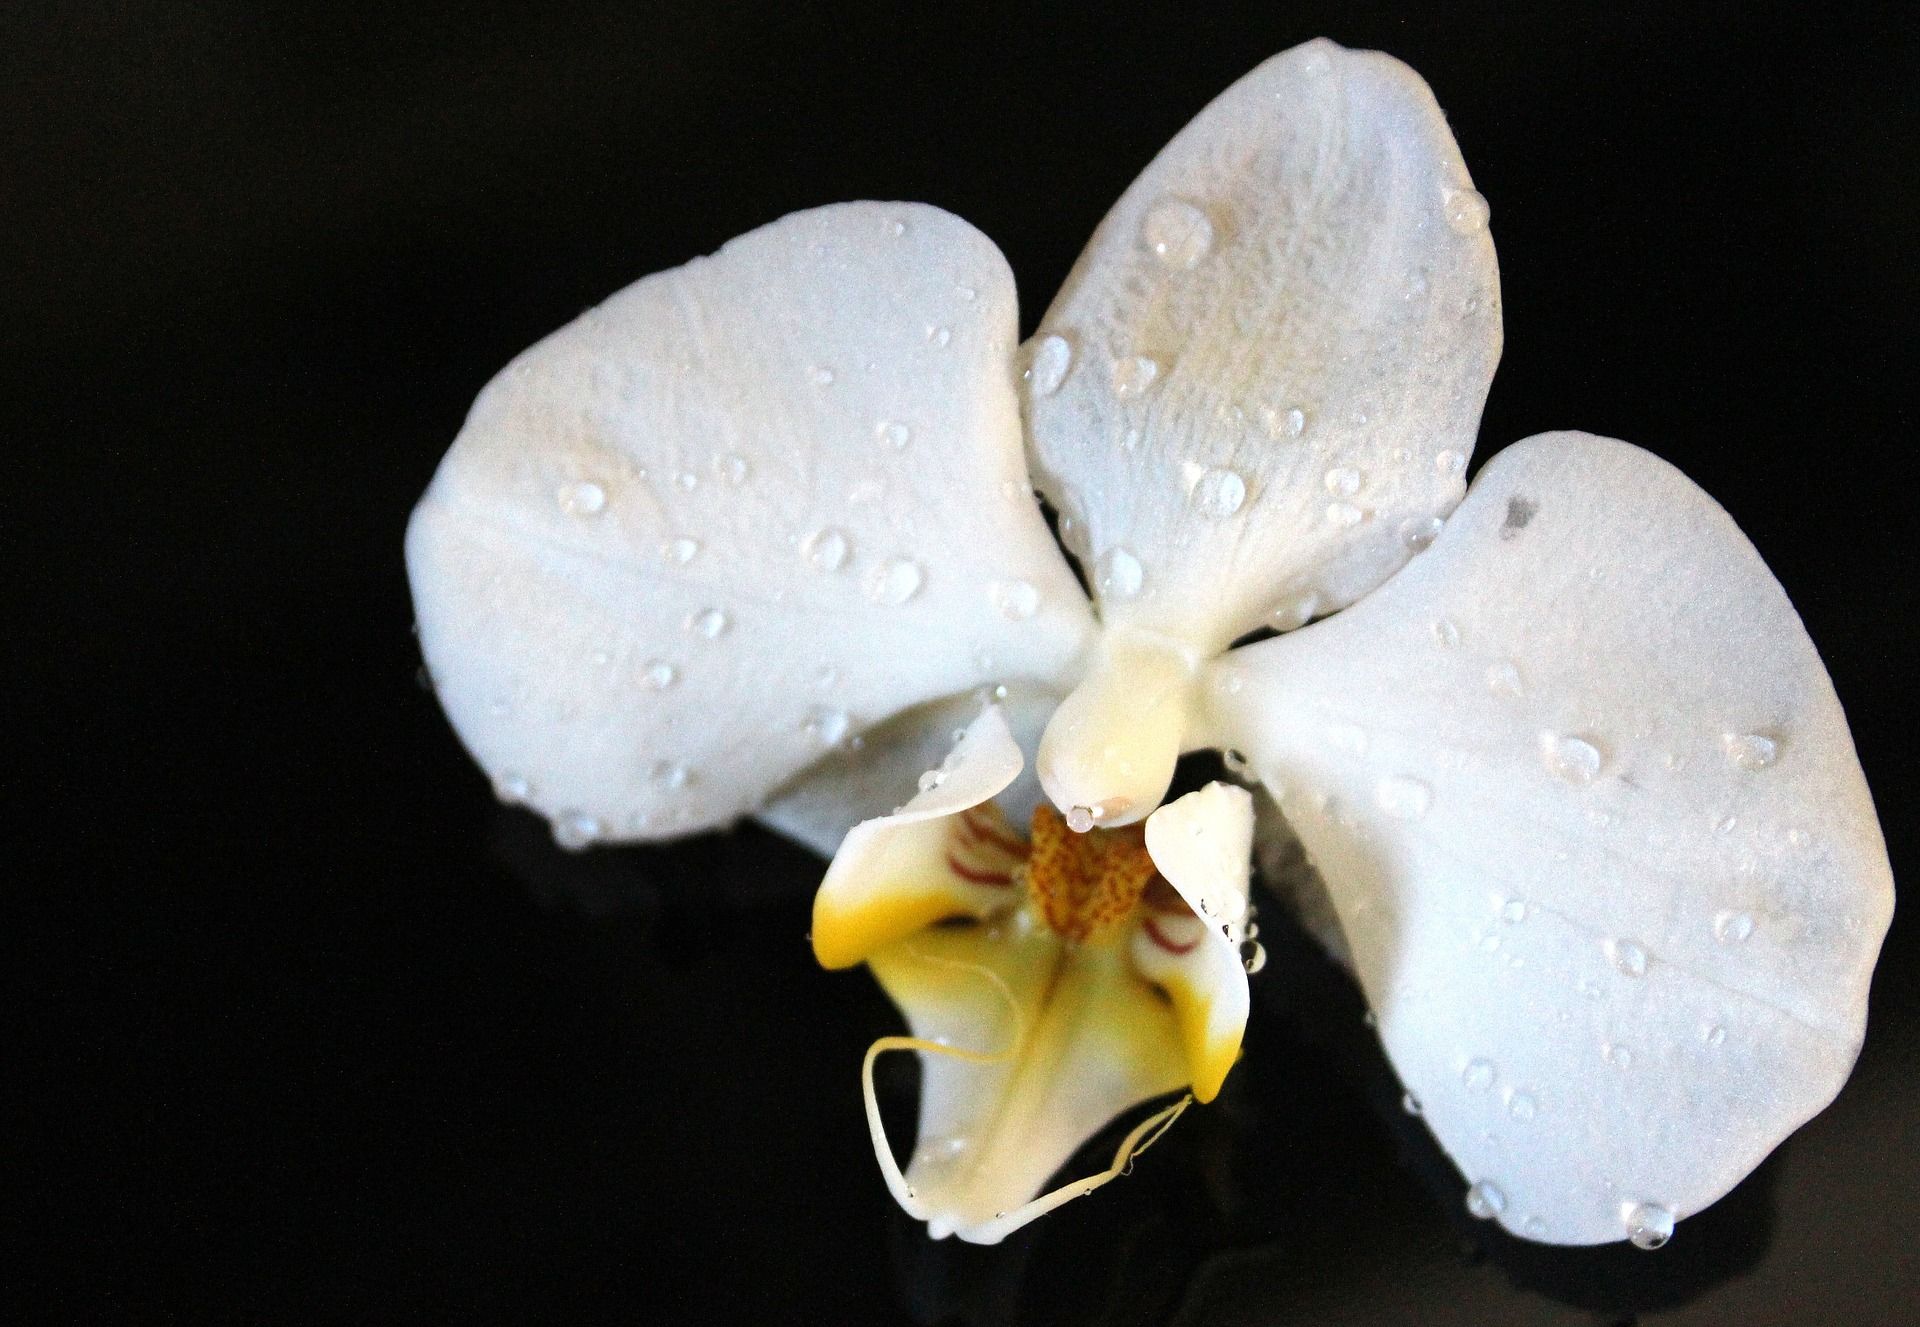 Wild Orchid, Blooming, Flower, Fragrance, Fresh, HQ Photo